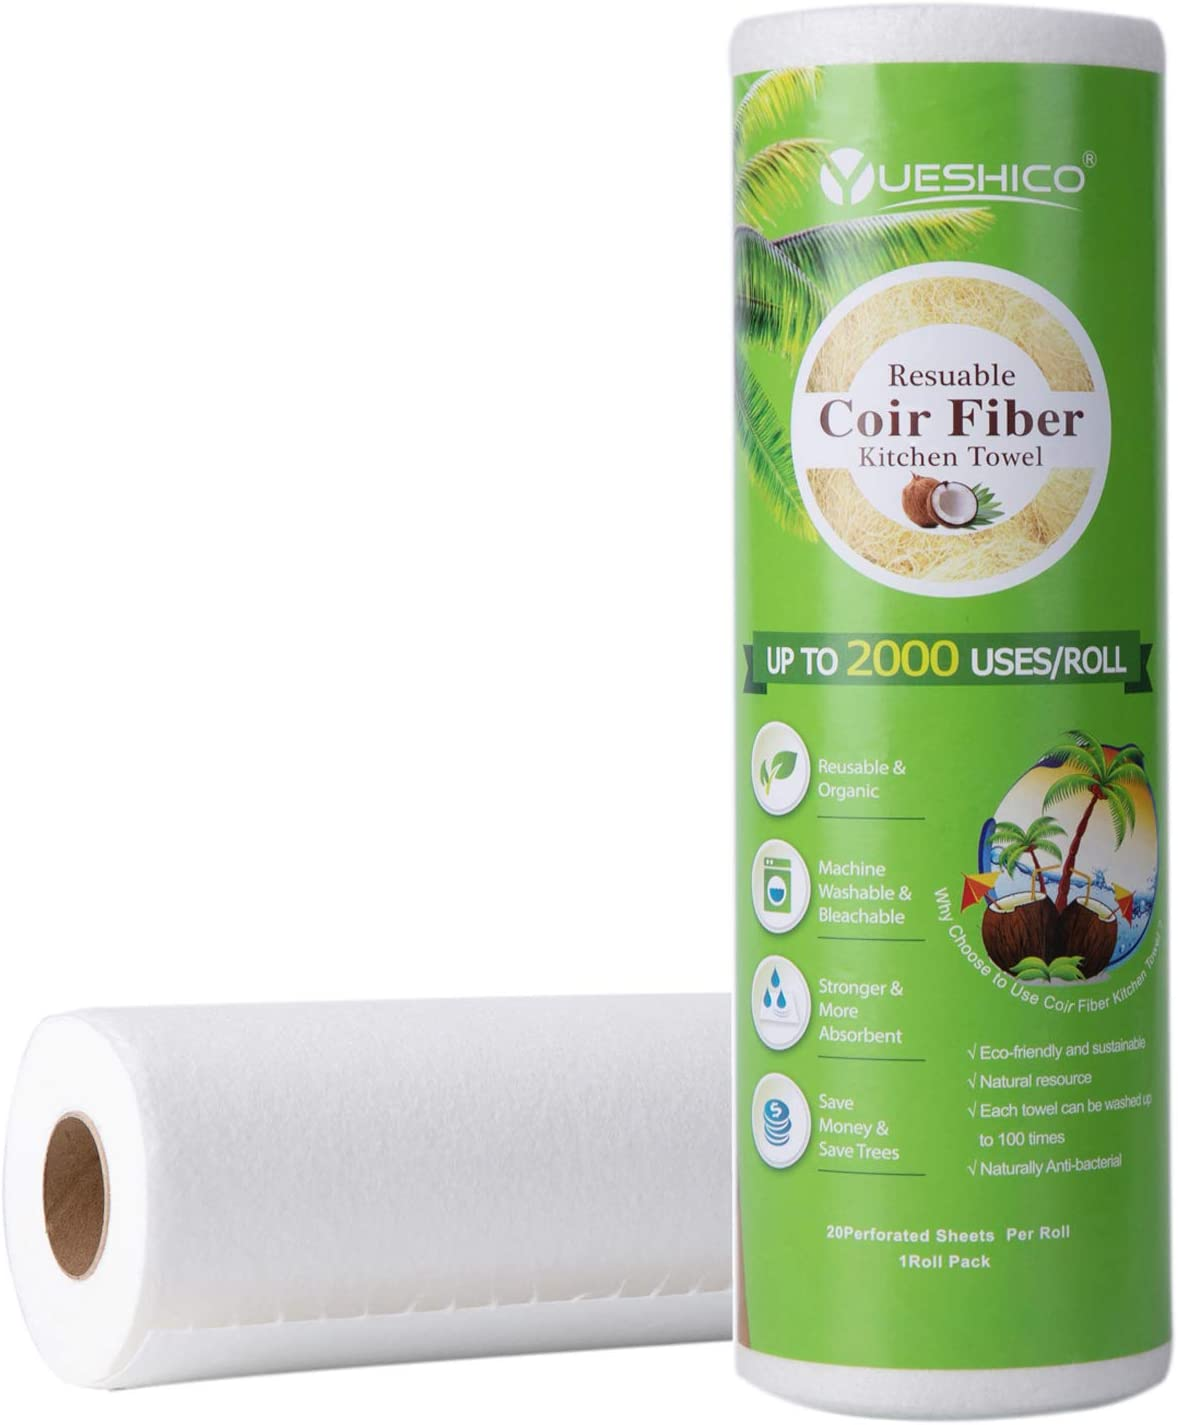 YUESHICO Reusable Paper Towels - Sustainable Coir Fiber Unpaper Towels - Organic Super Strong Durable and Absorbent Washable Kitchen Paper Towels - Eco Friendly, Biodegradable - 1 Rolls, 20 Sheets